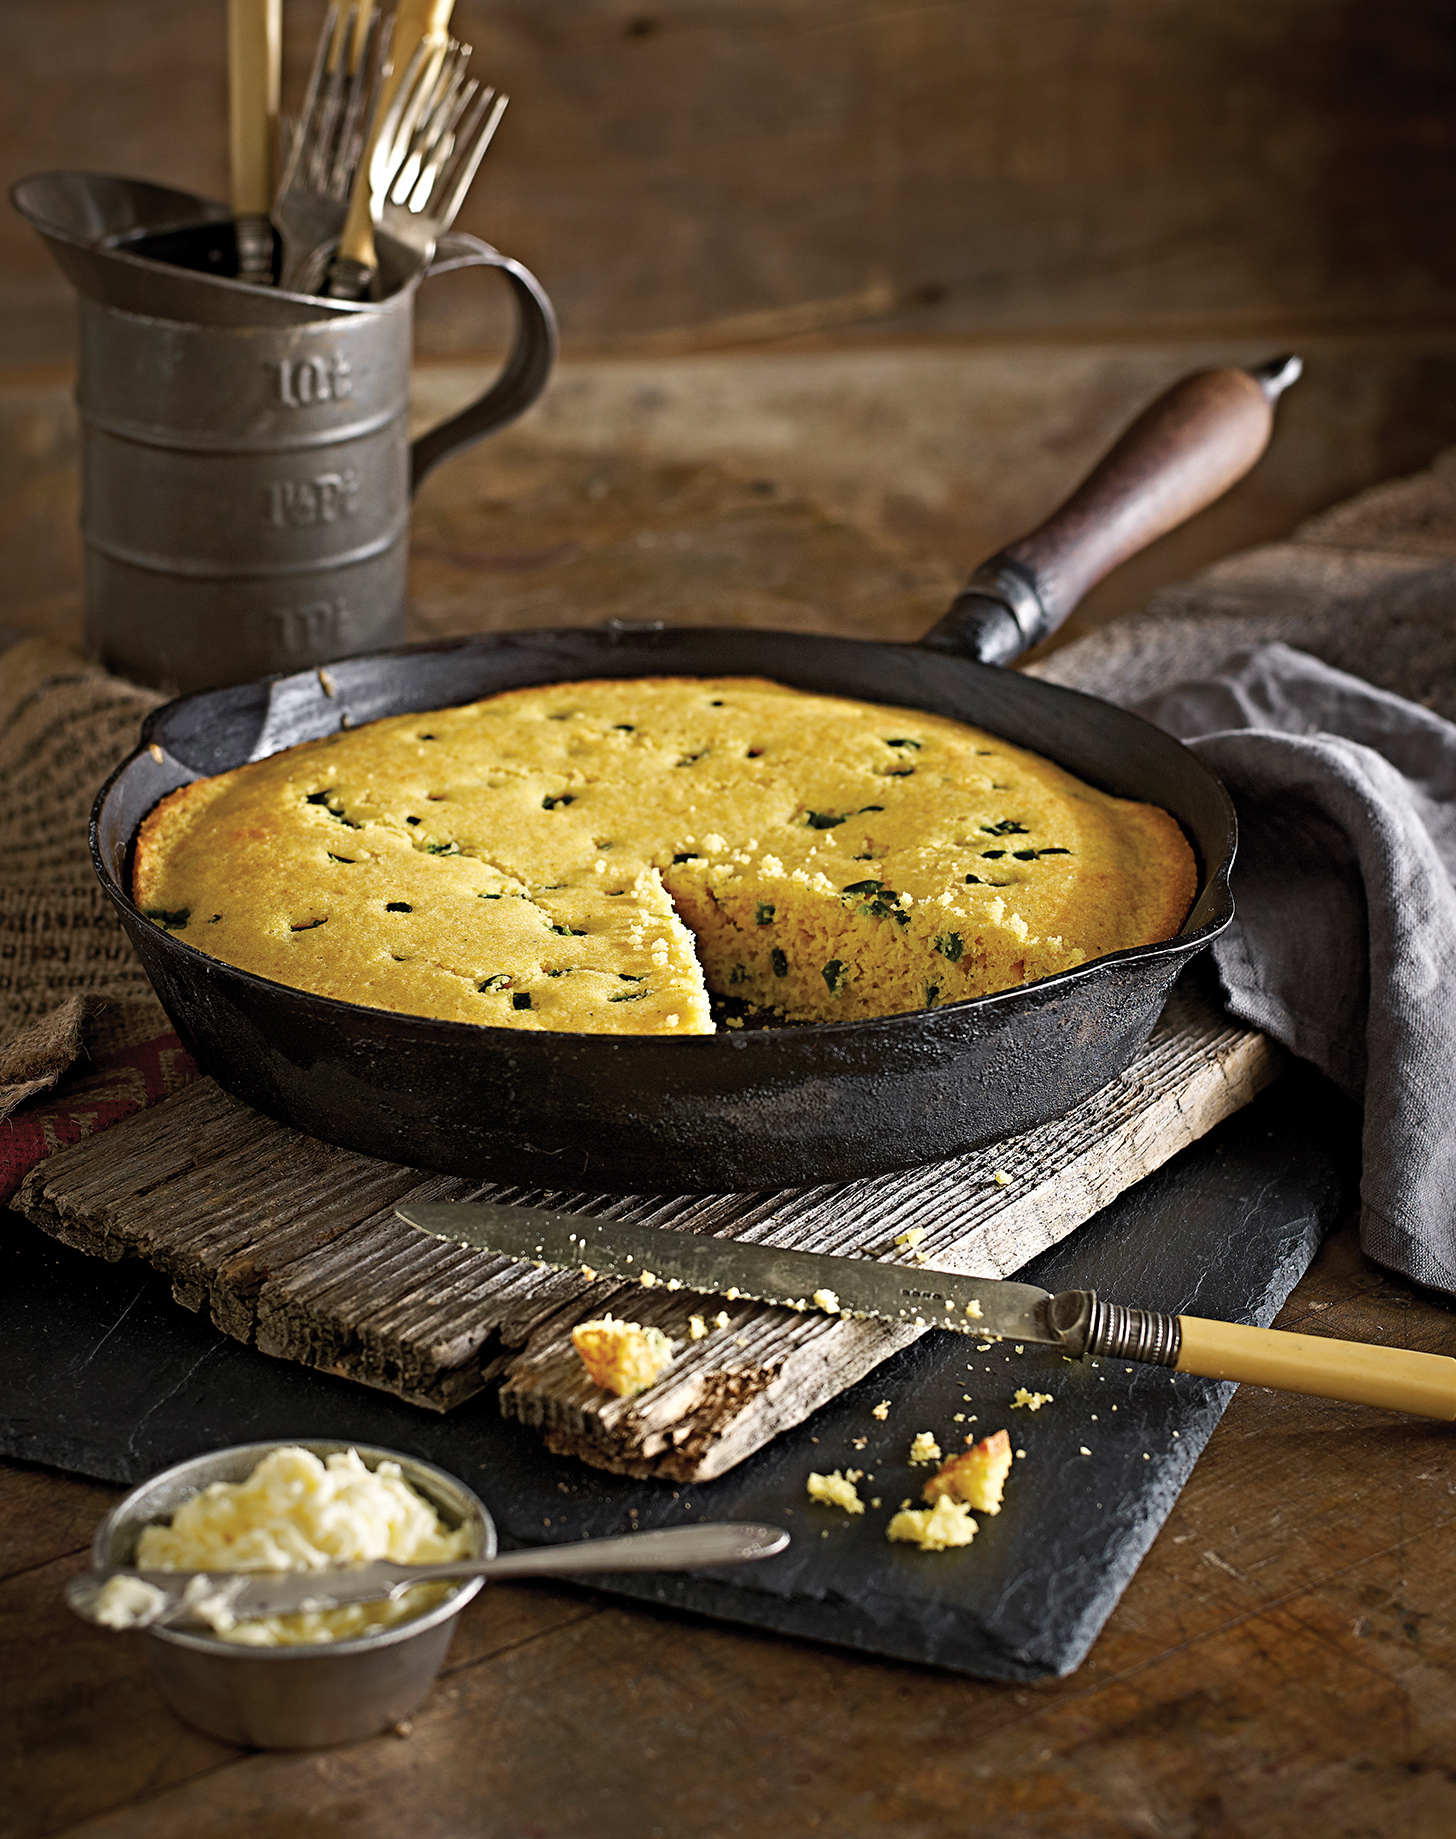 Photography - Cornbread in a Pan with Butter and Cutlery